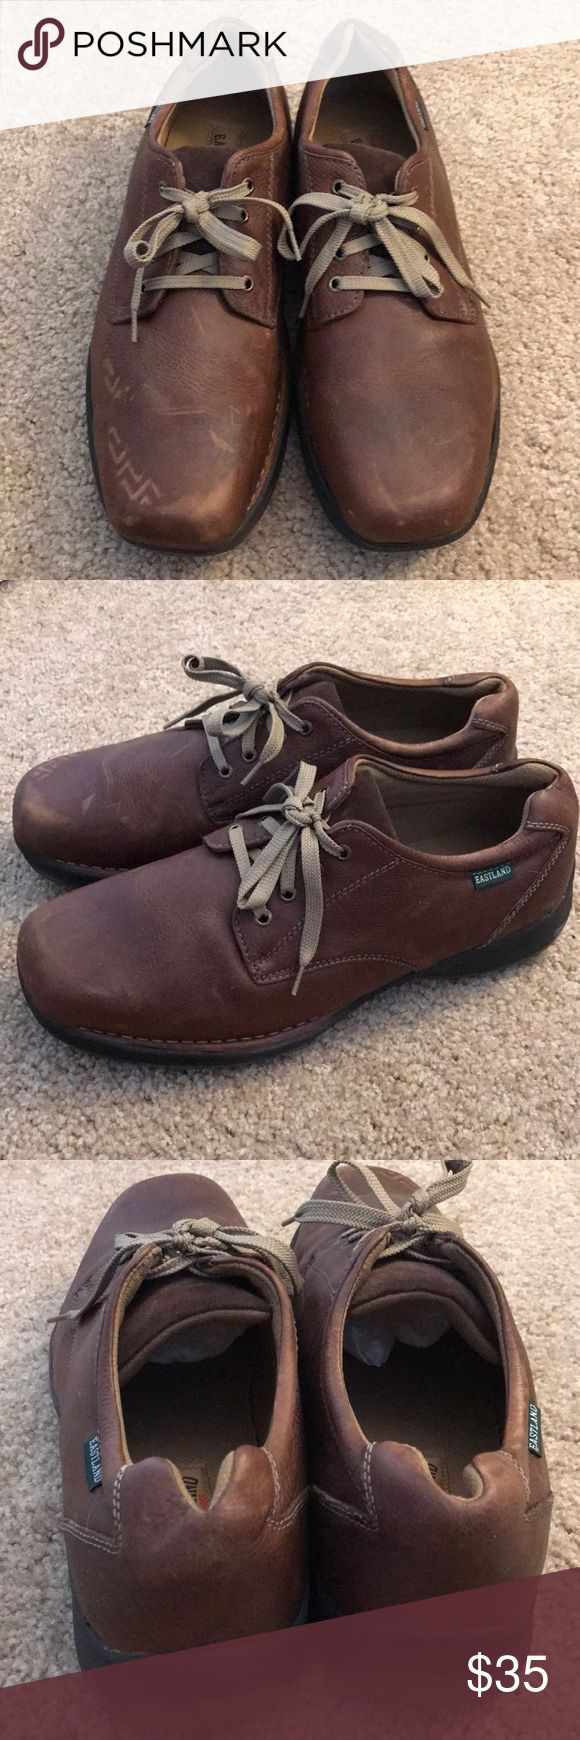 Eastland men's shoes Eastland men's shoes leather color brown has minor scratch but in great condition overall - size 13 wide Eastland Shoes Oxfords & Derbys